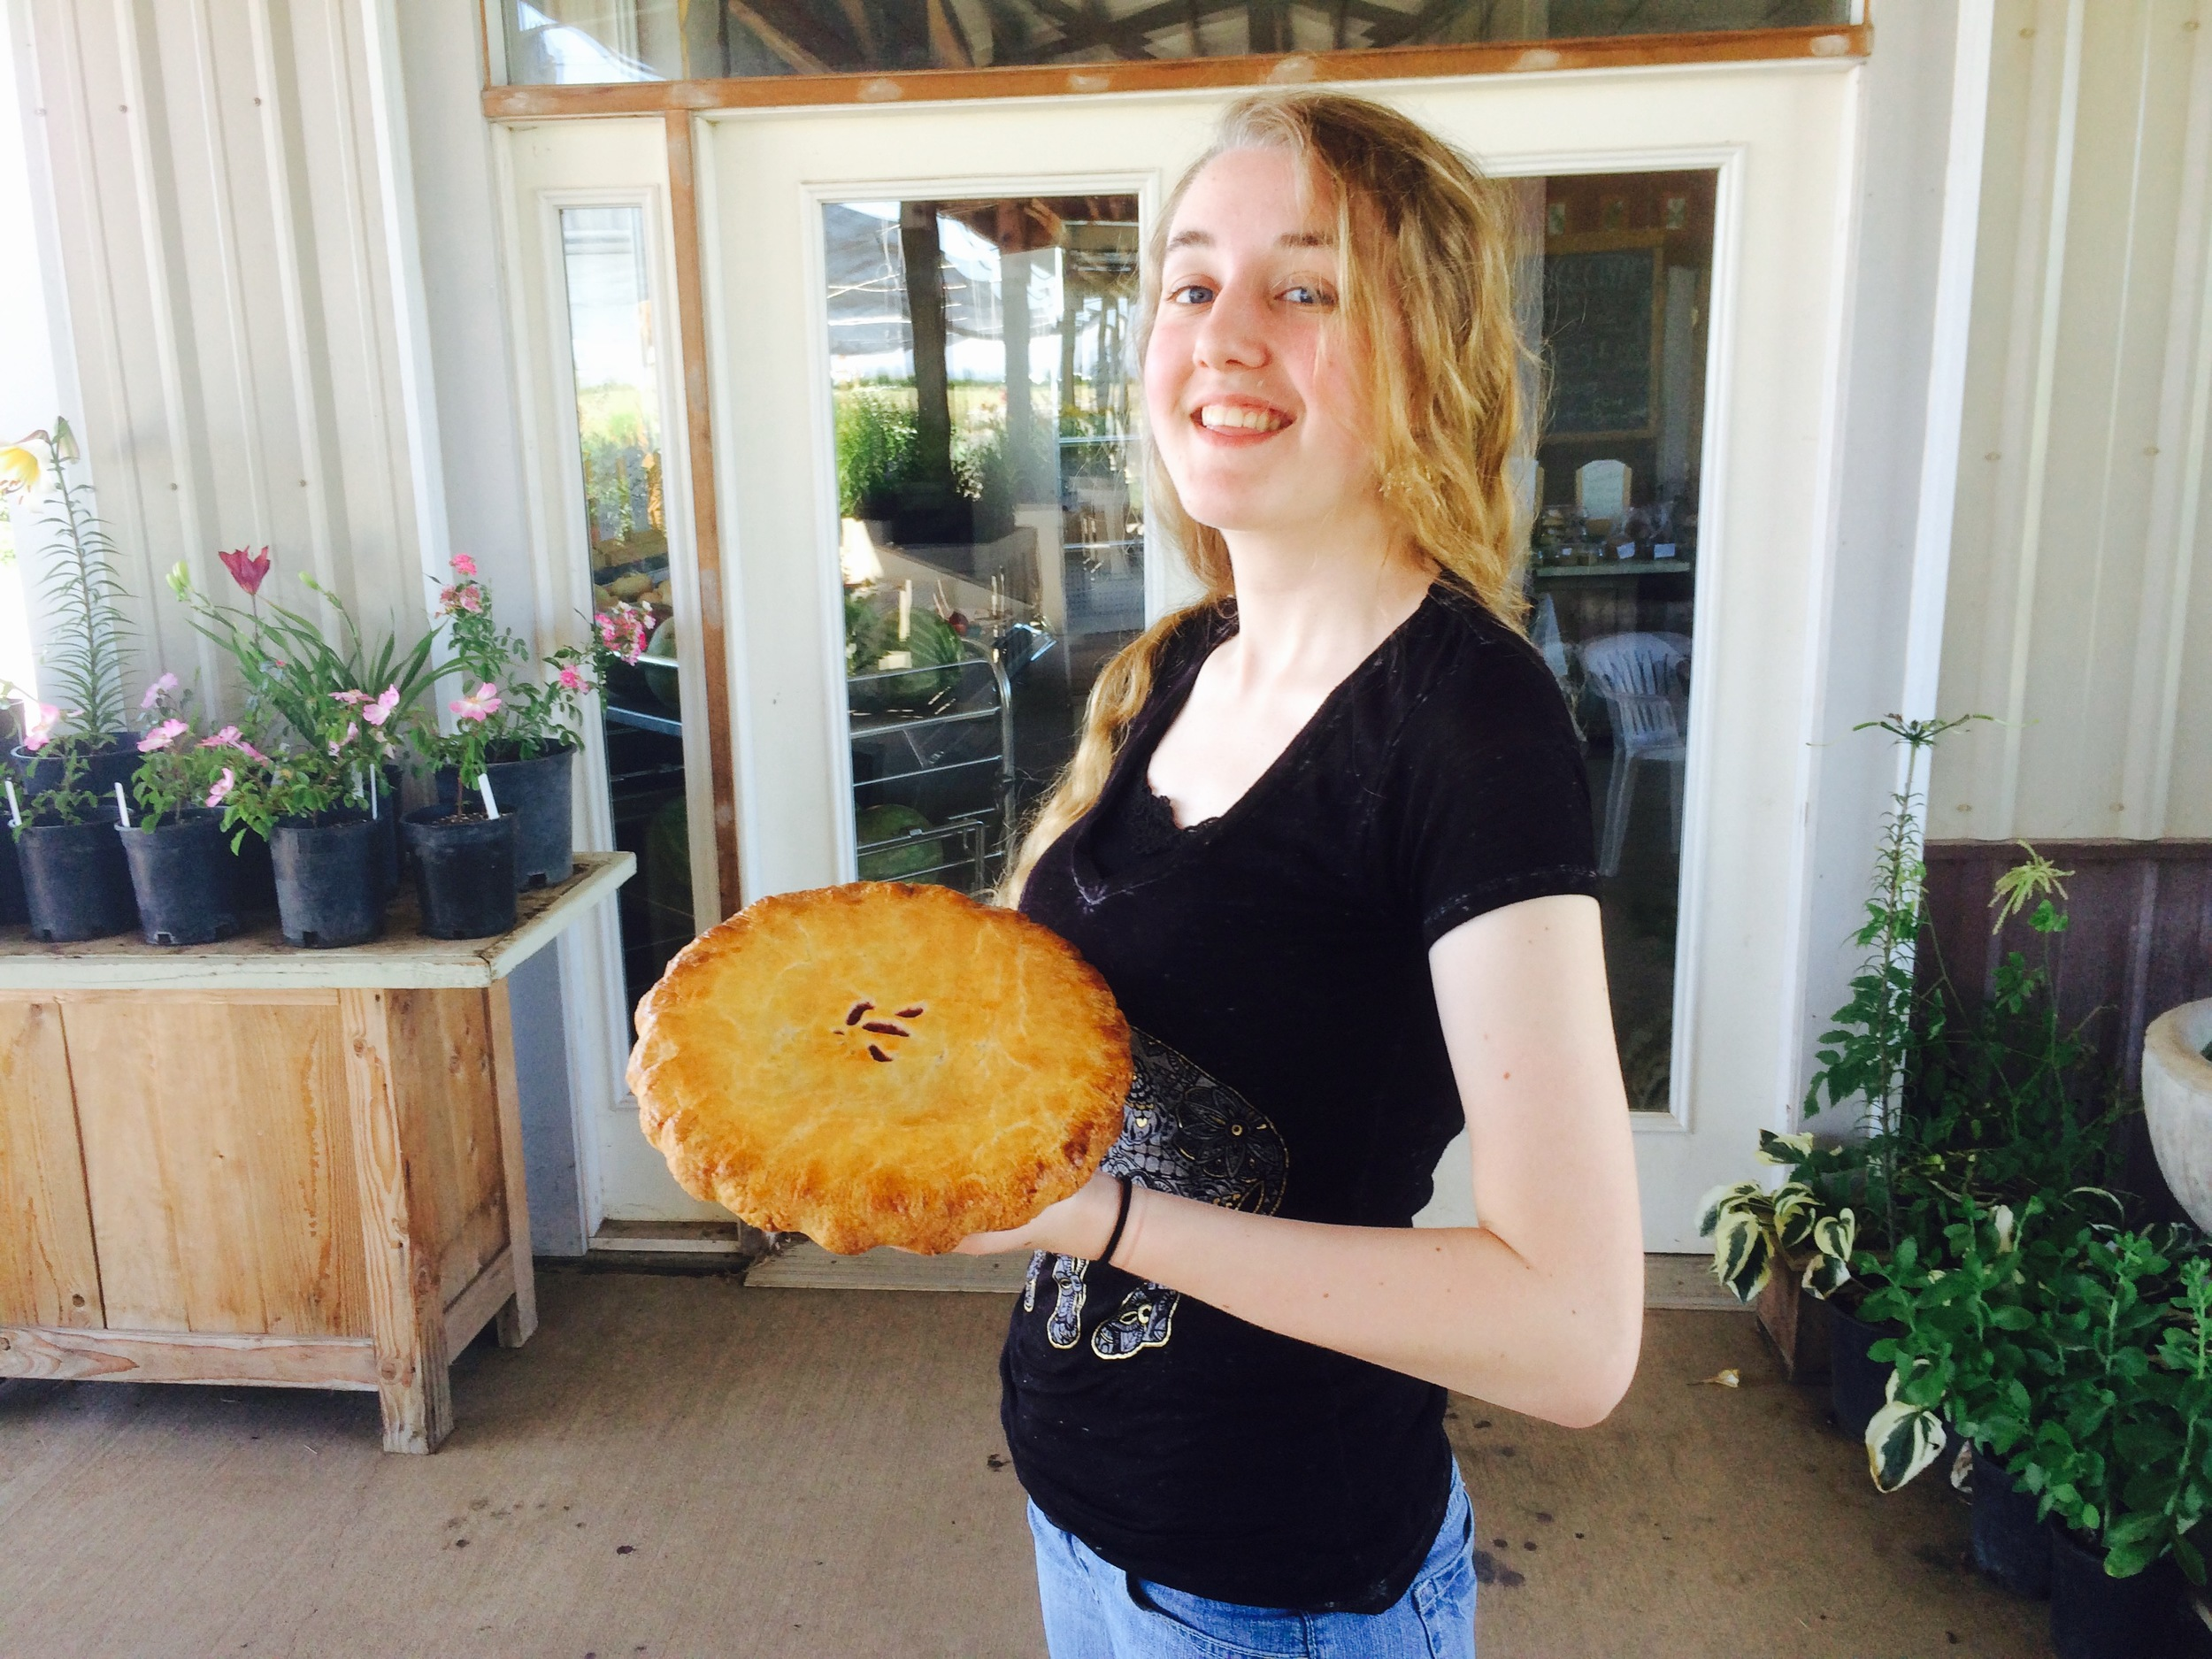 Grab a pie in time for the 4th of July!